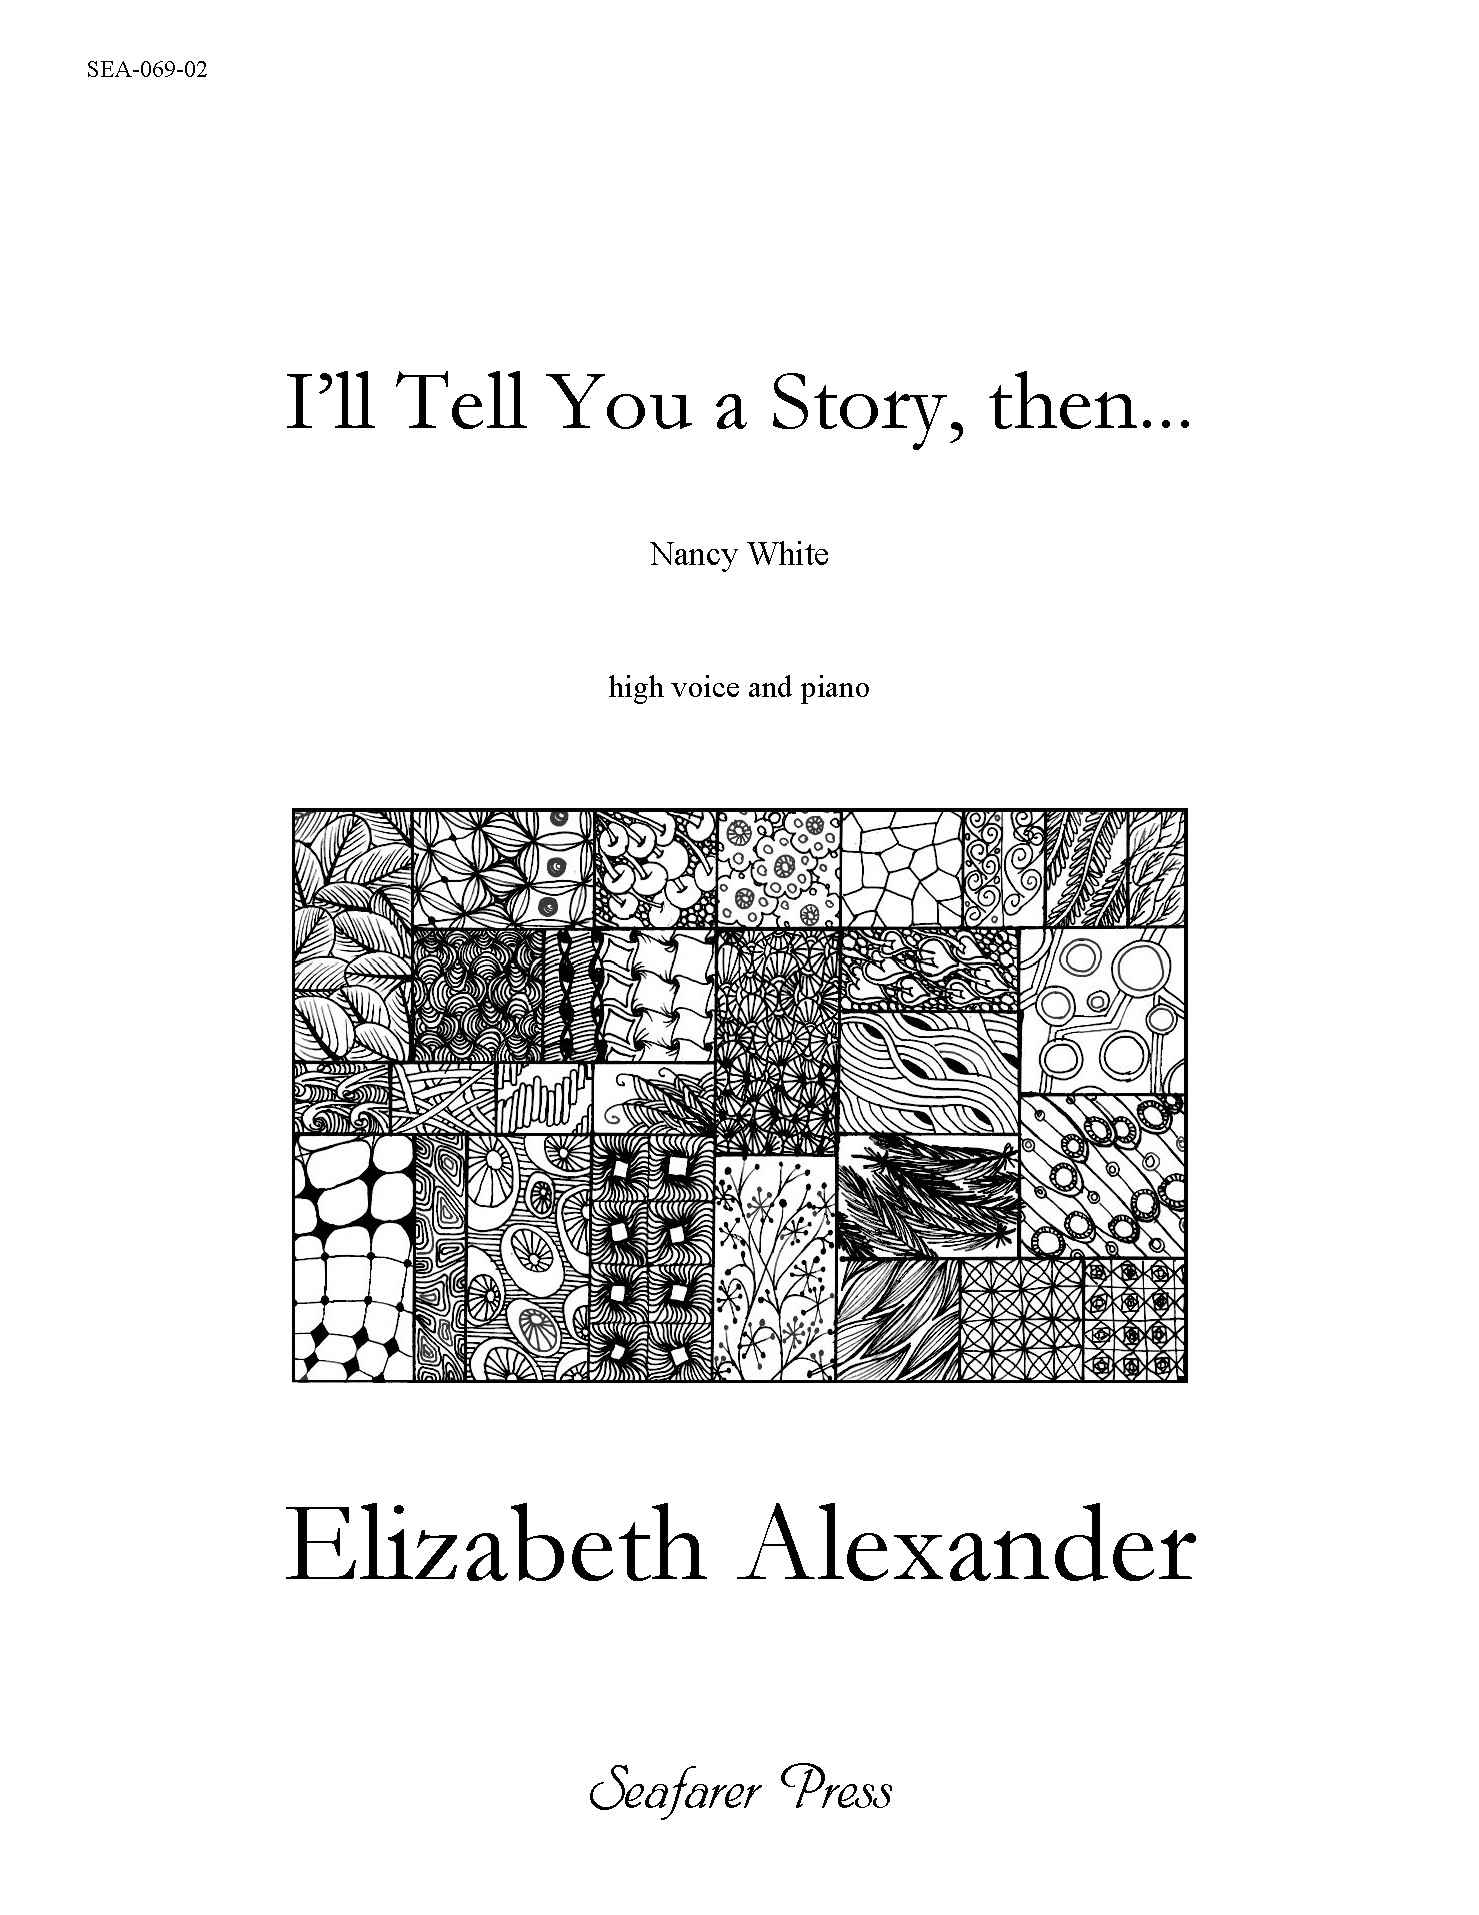 SEA-069-02 - I'll Tell You A Story, then…